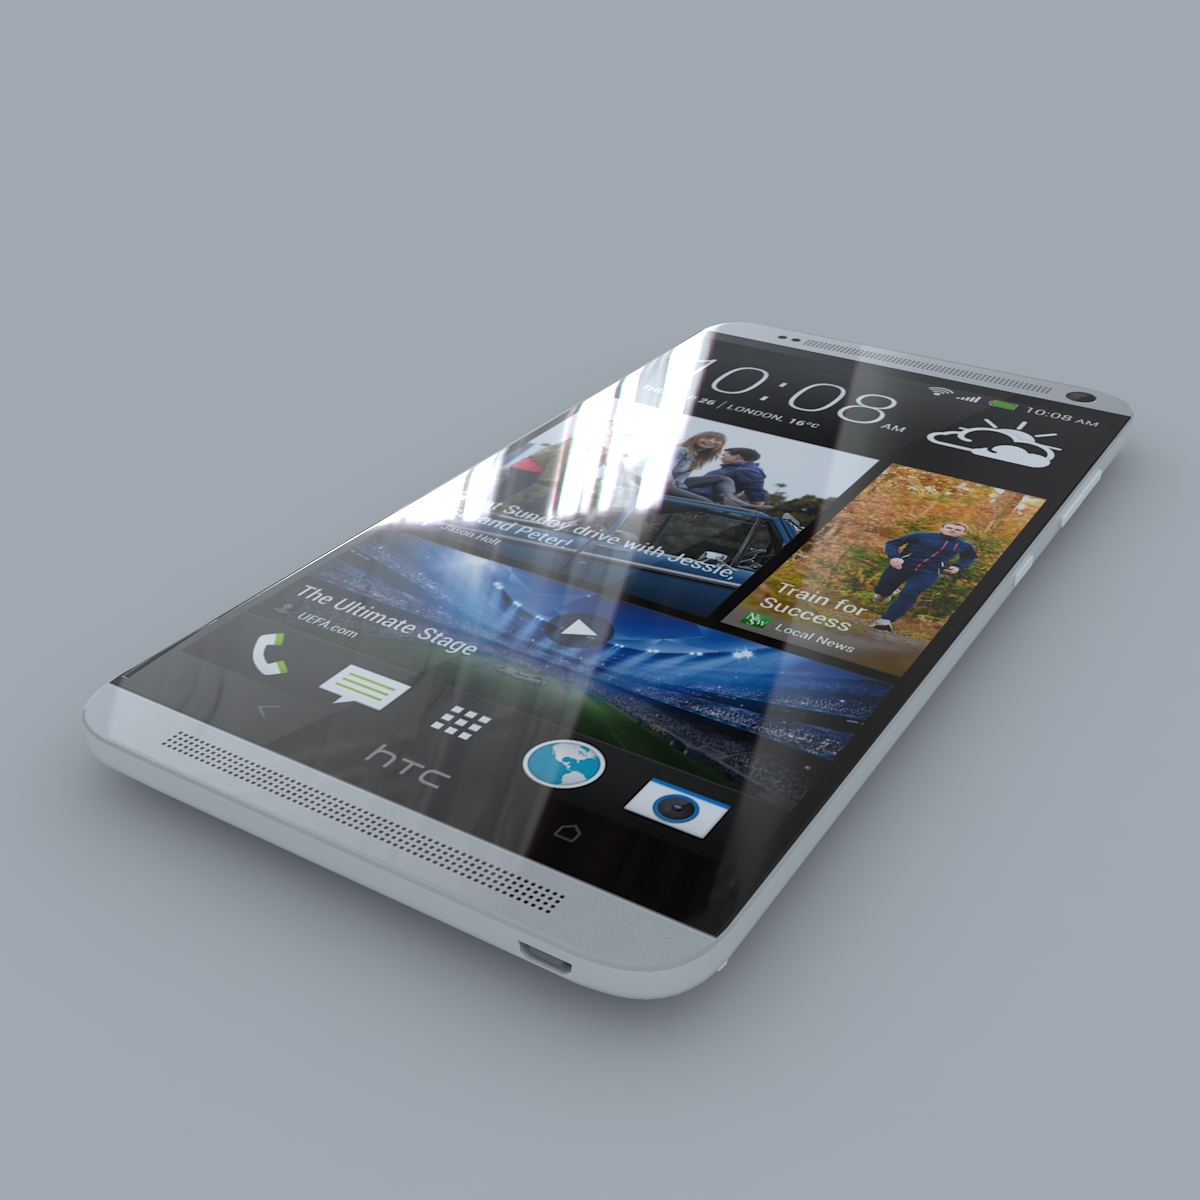 htc one max 3d model max c4d ma mb obj 158164